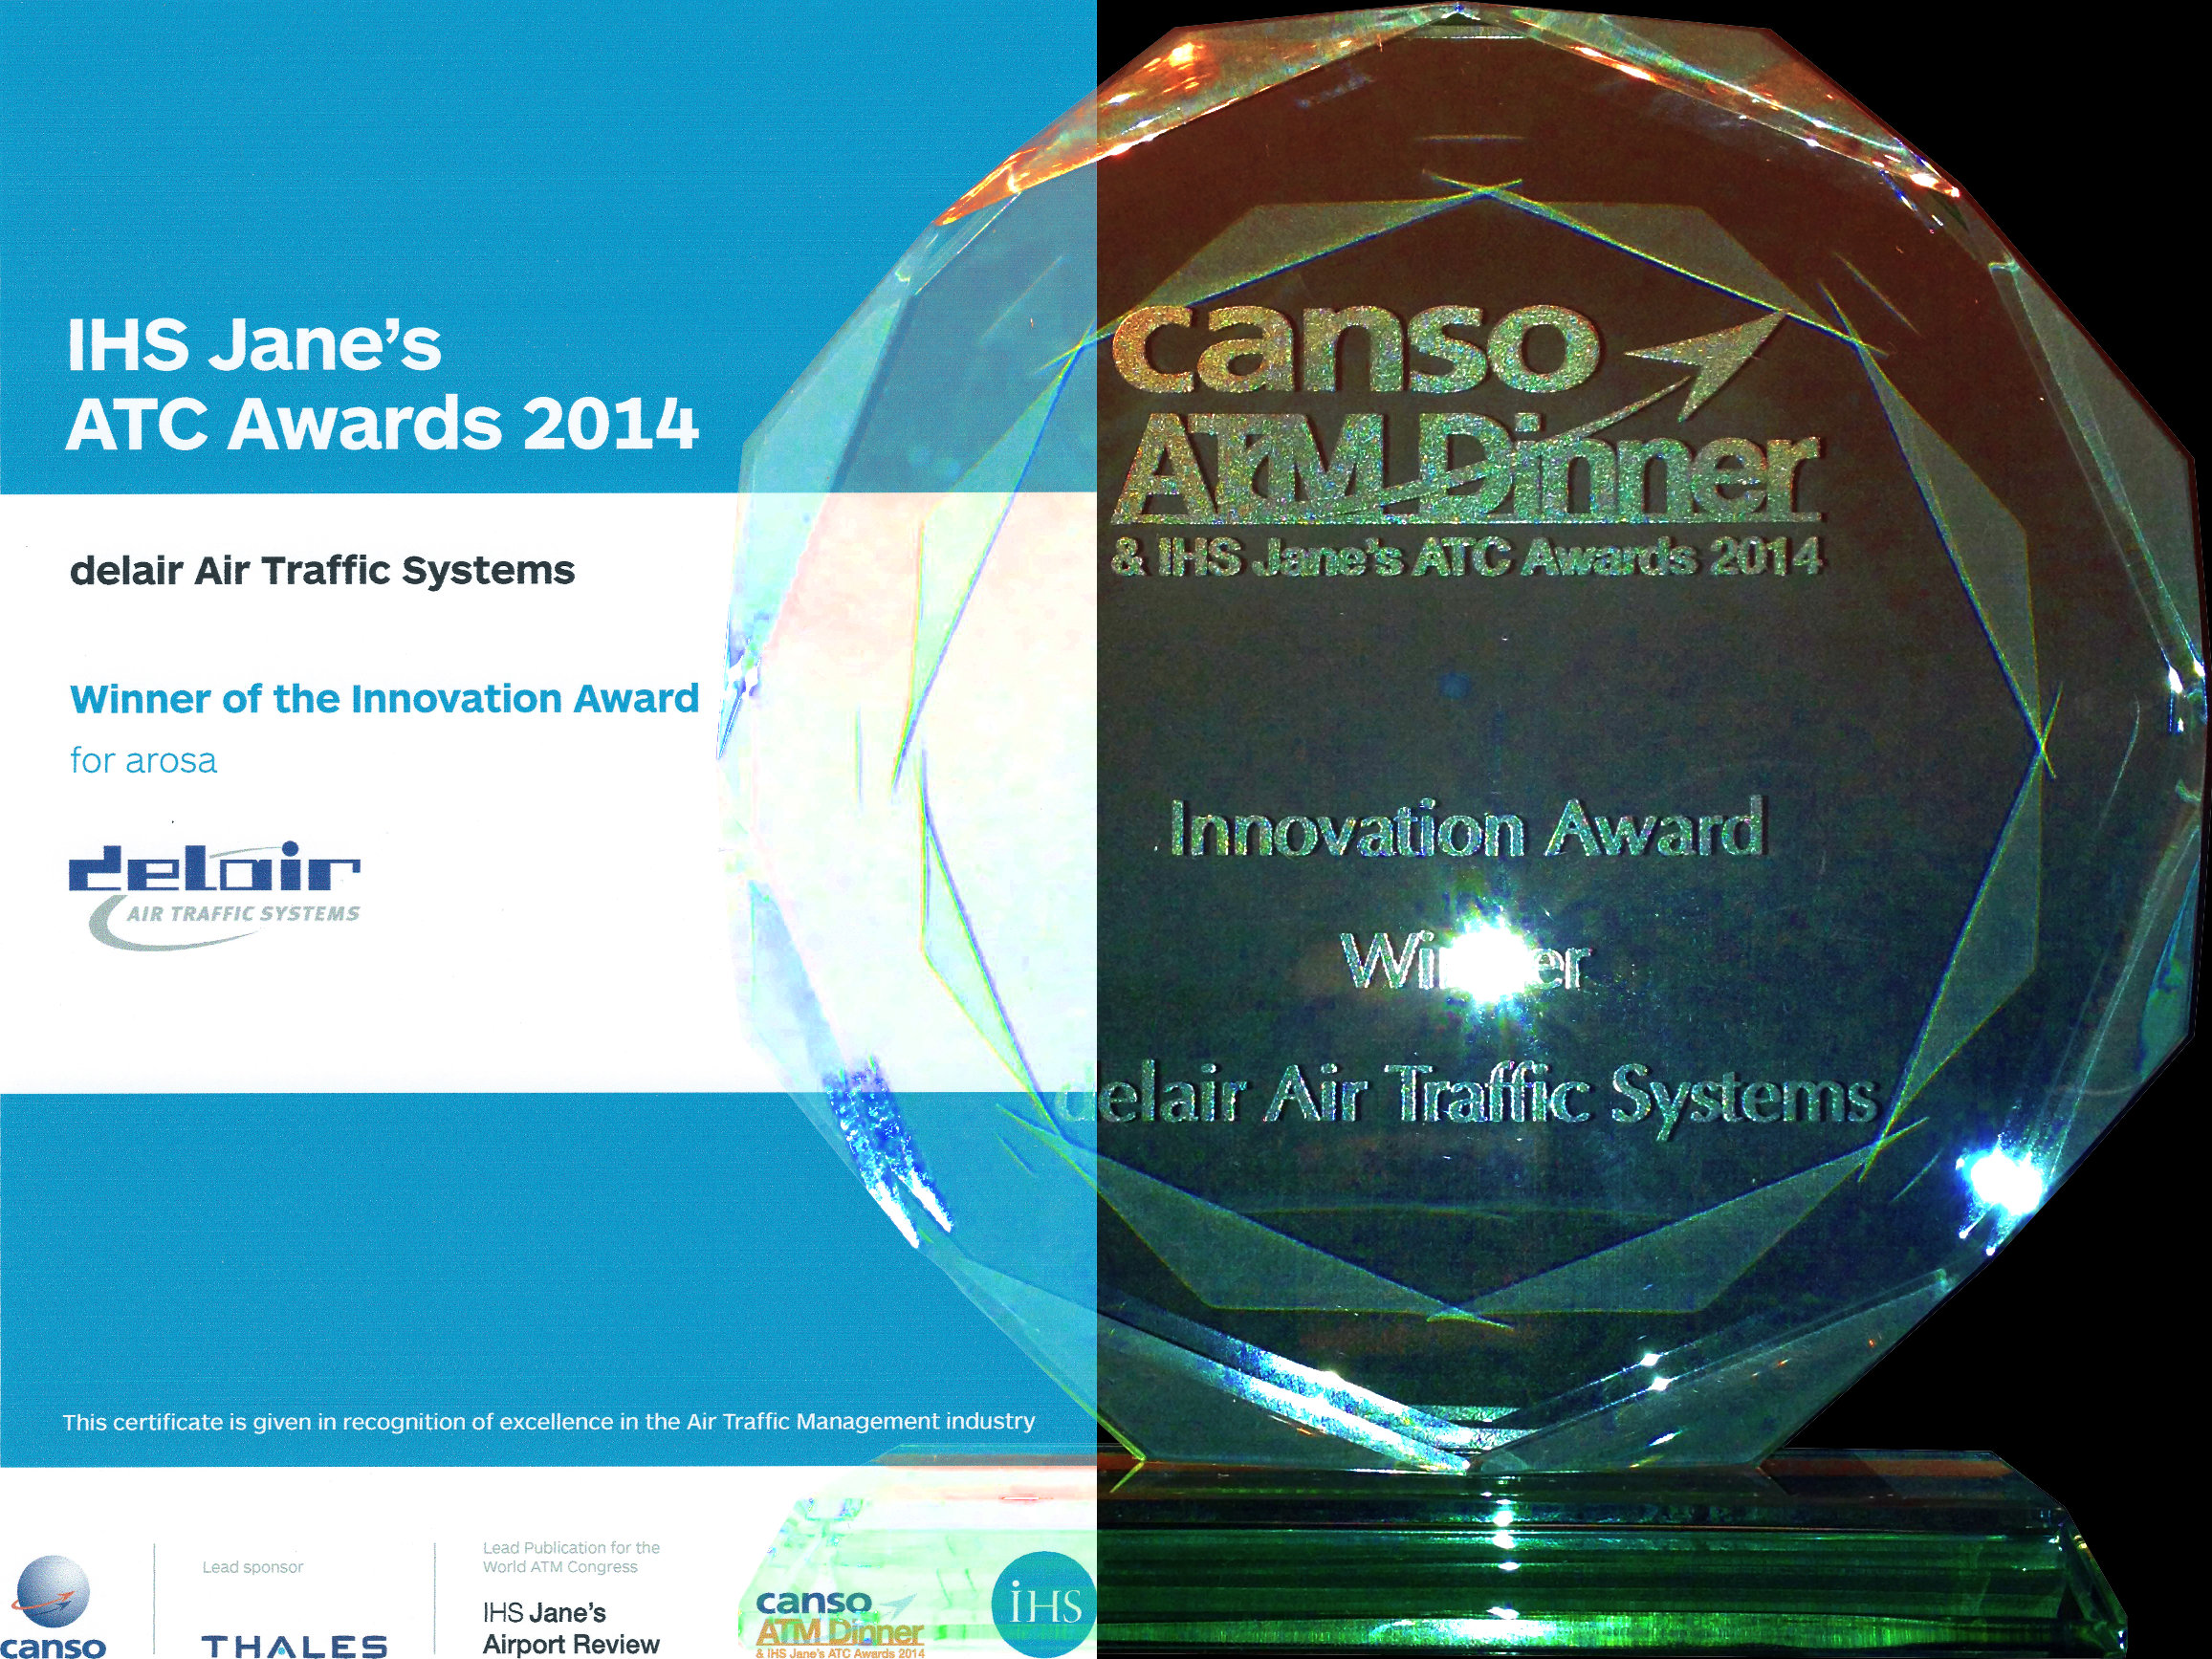 IHS Janes Innovation Award 2014